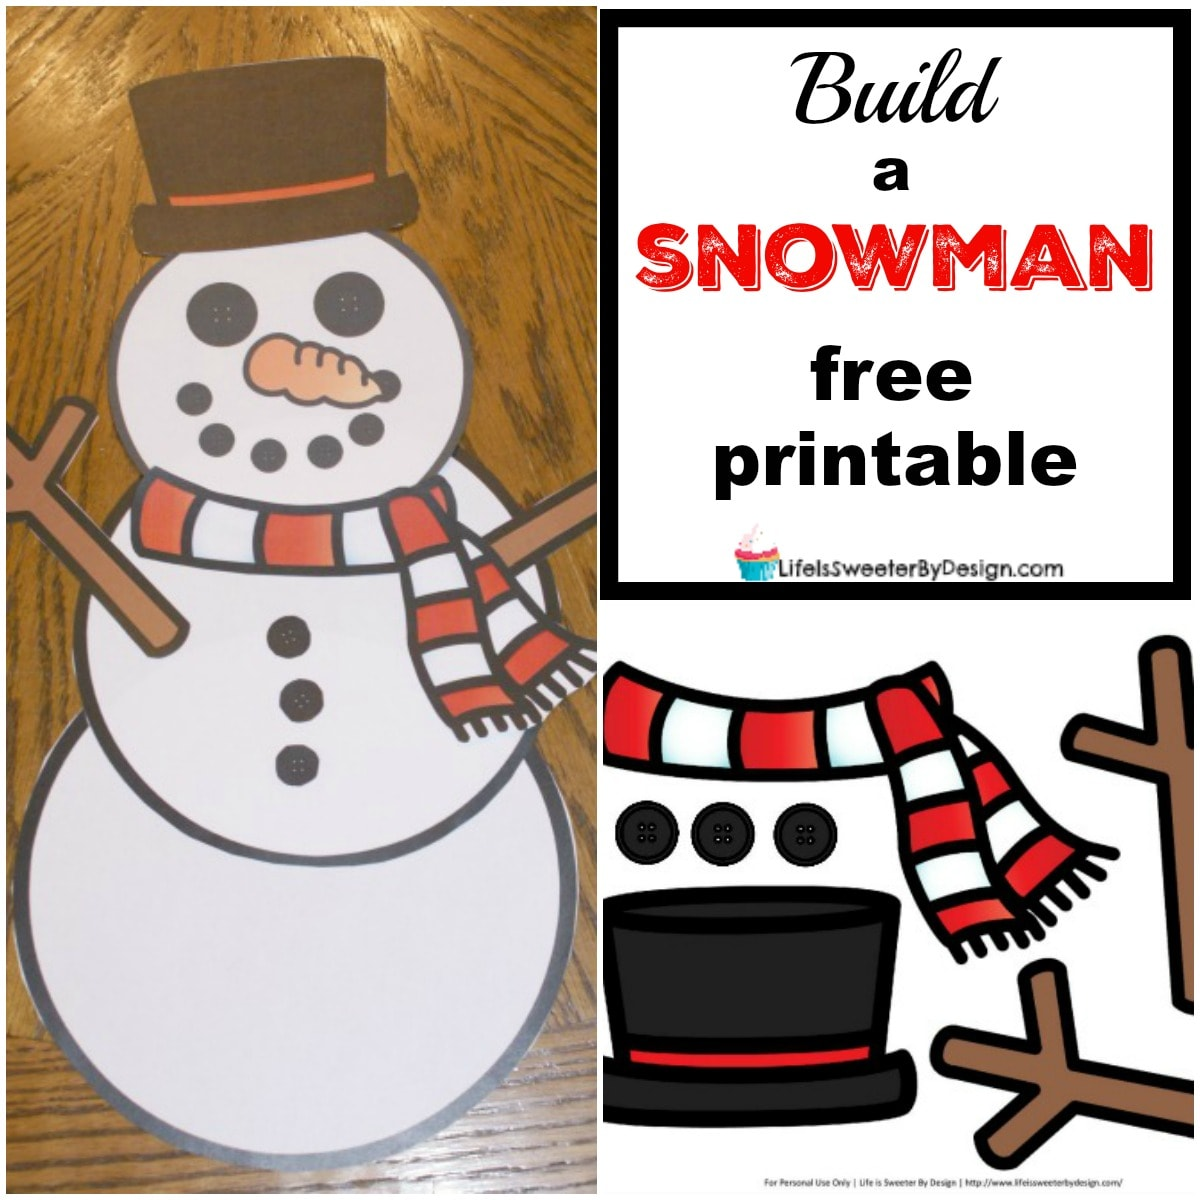 image relating to Free Printable Snowman called Develop a Snowman Totally free Printables - Existence is Sweeter Through Style